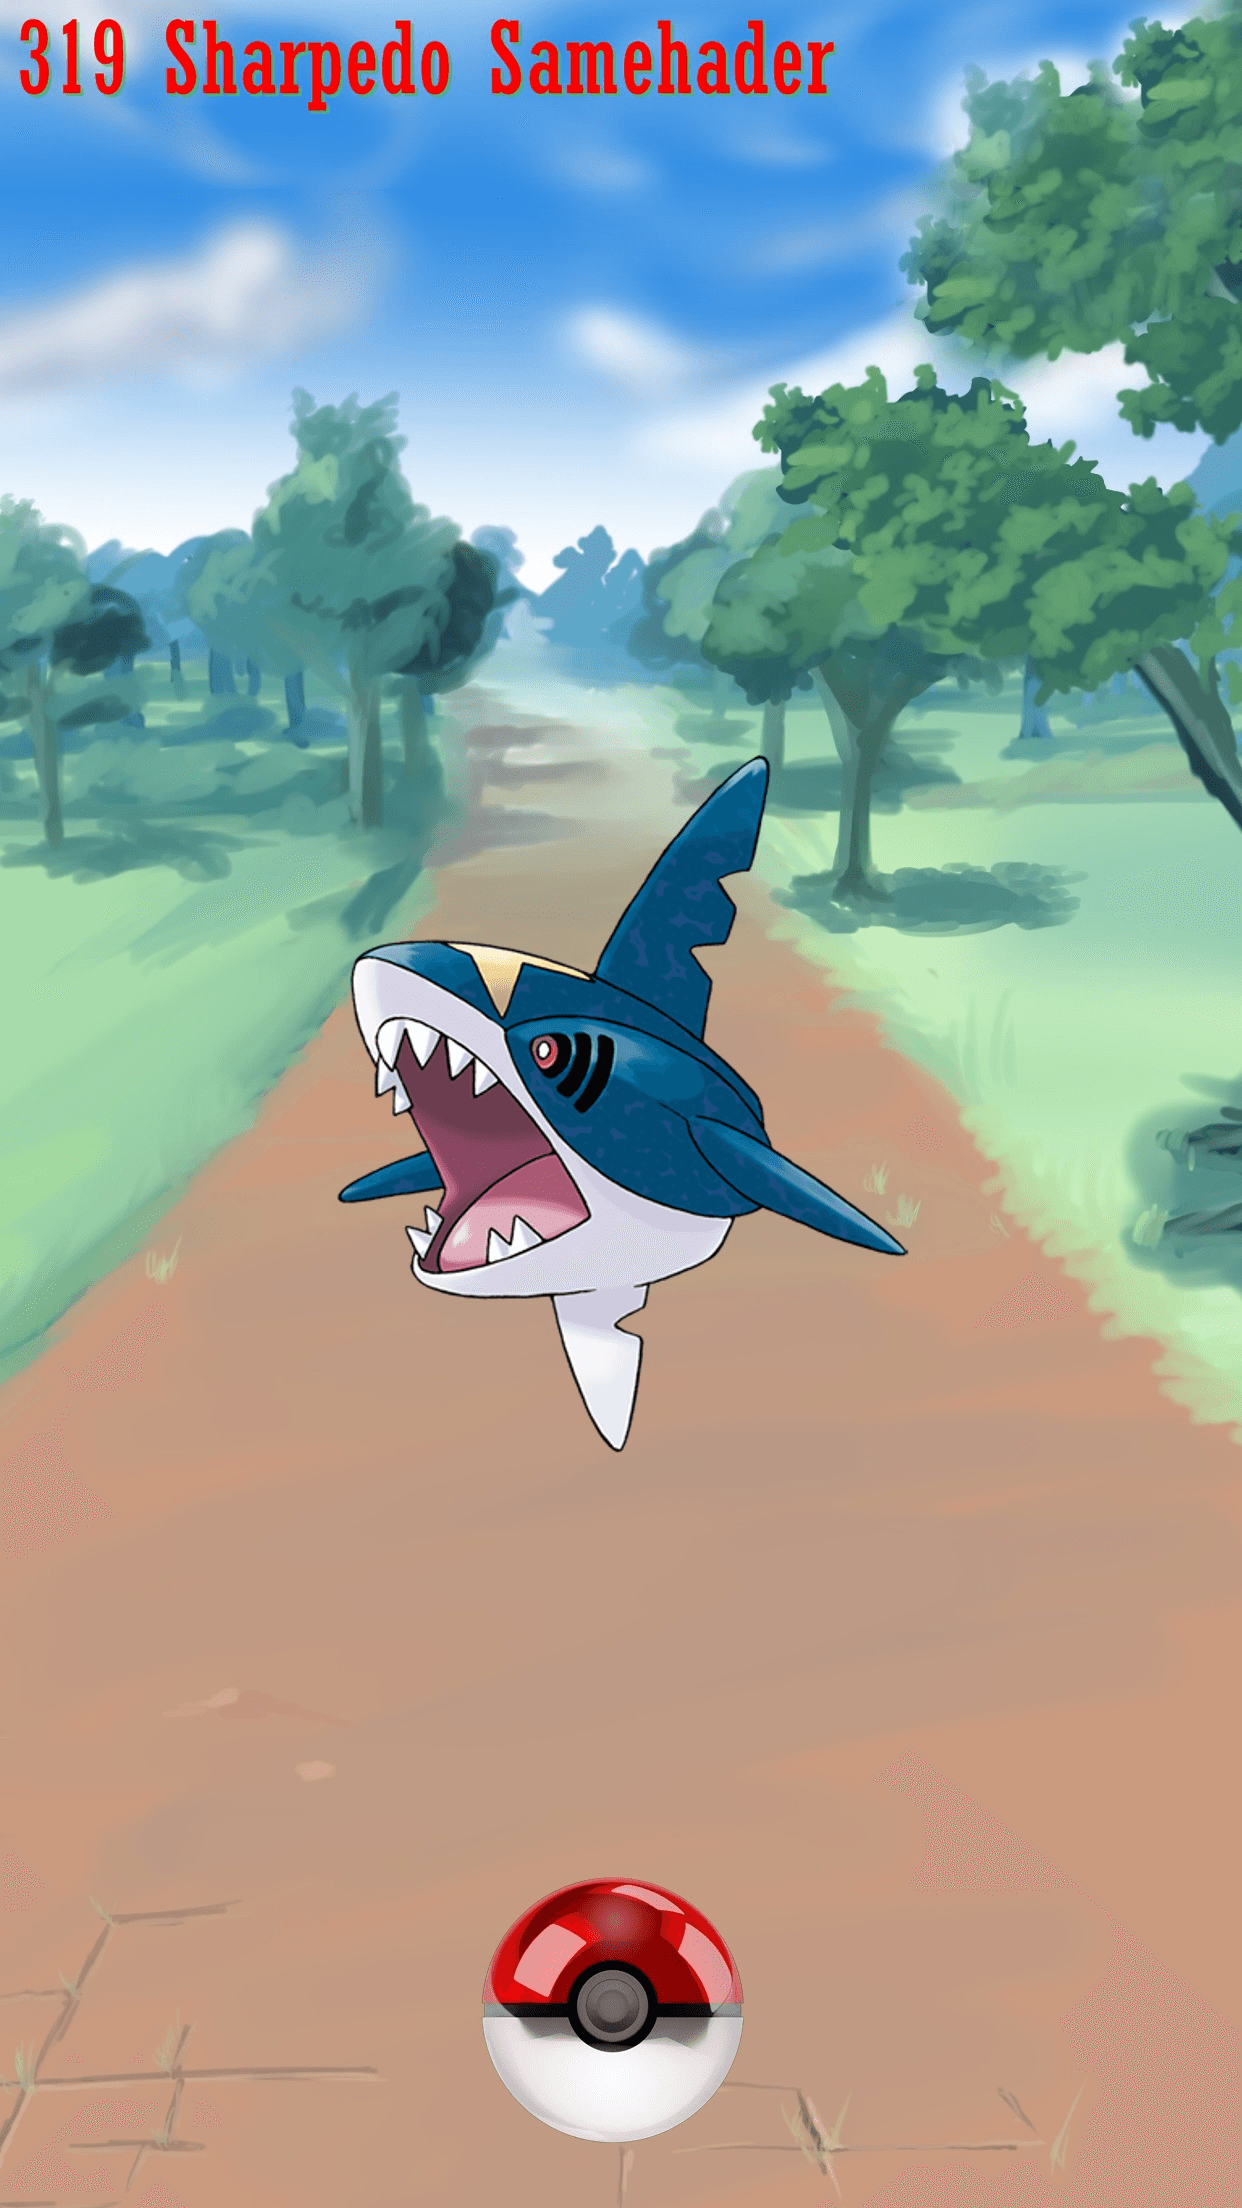 319 Street Pokeball Sharpedo Samehader